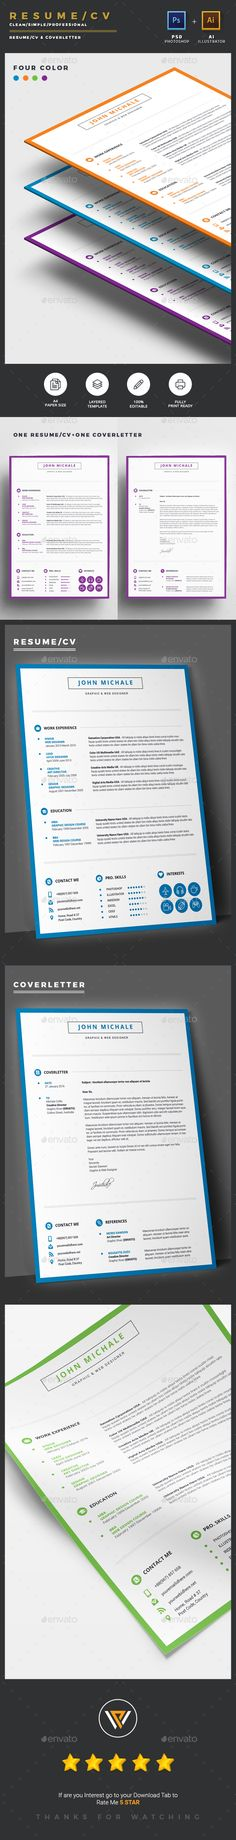 Modern infographic resume cv template psd ai illustrator clean resumecv psd template inspiration vector resume resume booklet yelopaper Image collections